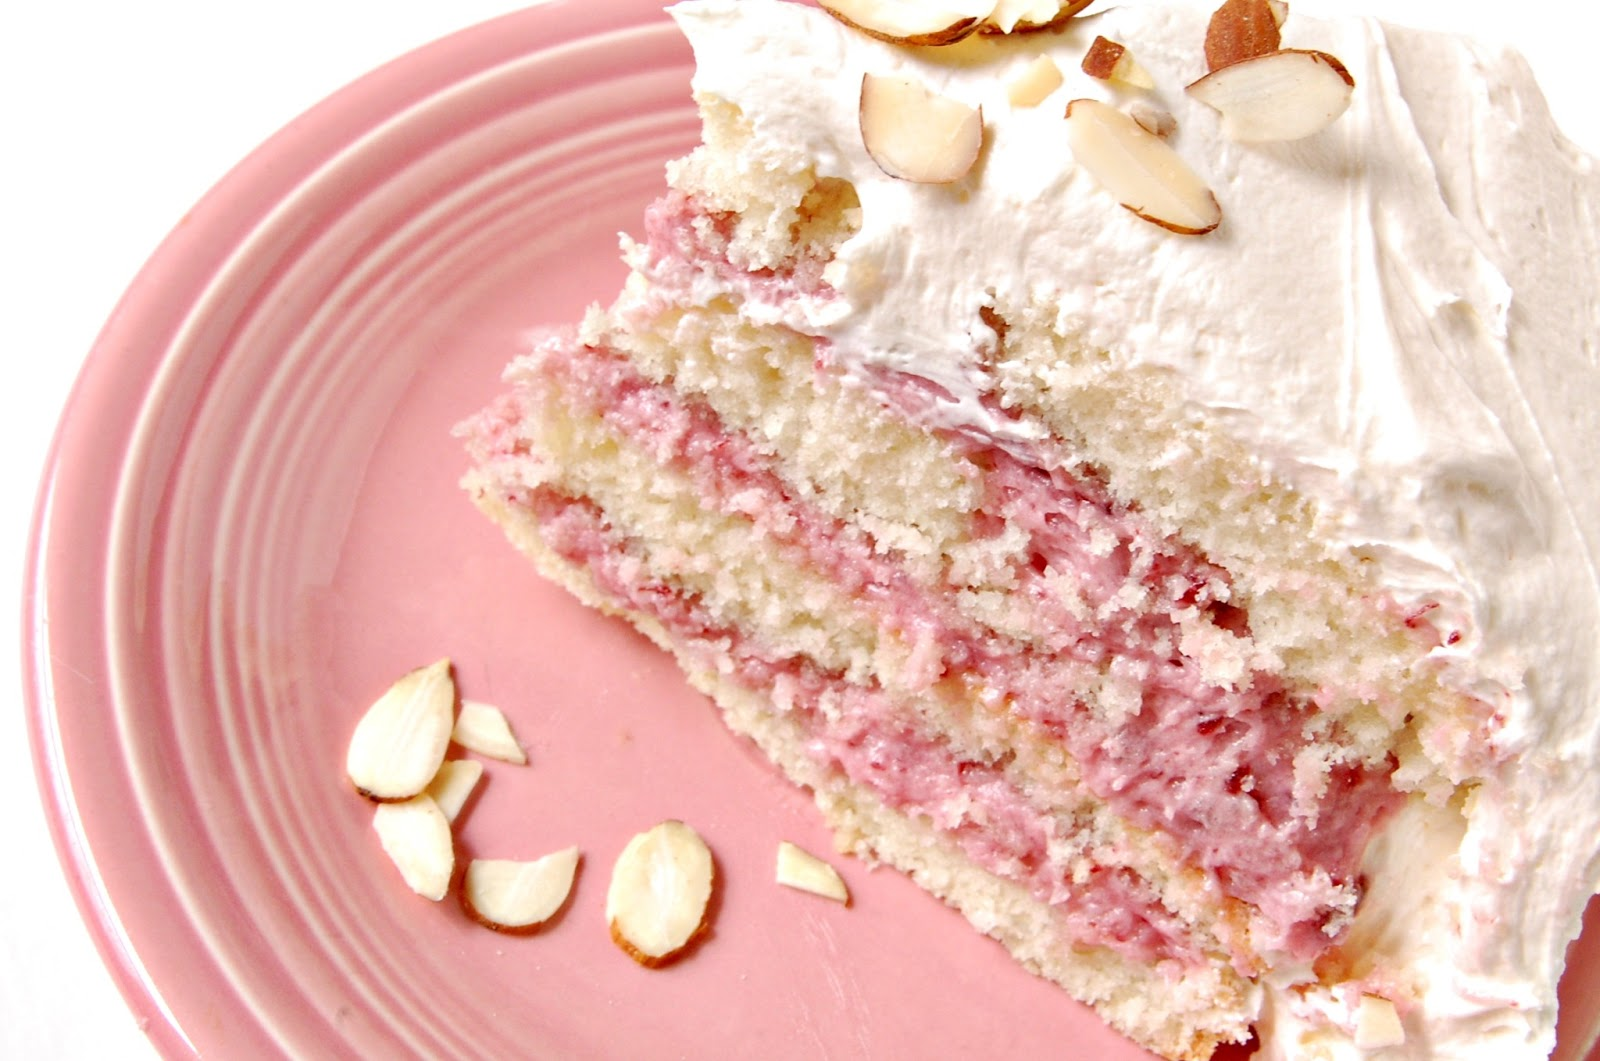 Cake Filling Recipes Without Icing Sugar: Beta Vegan: Almond Cake With Cherry Buttercream Filling